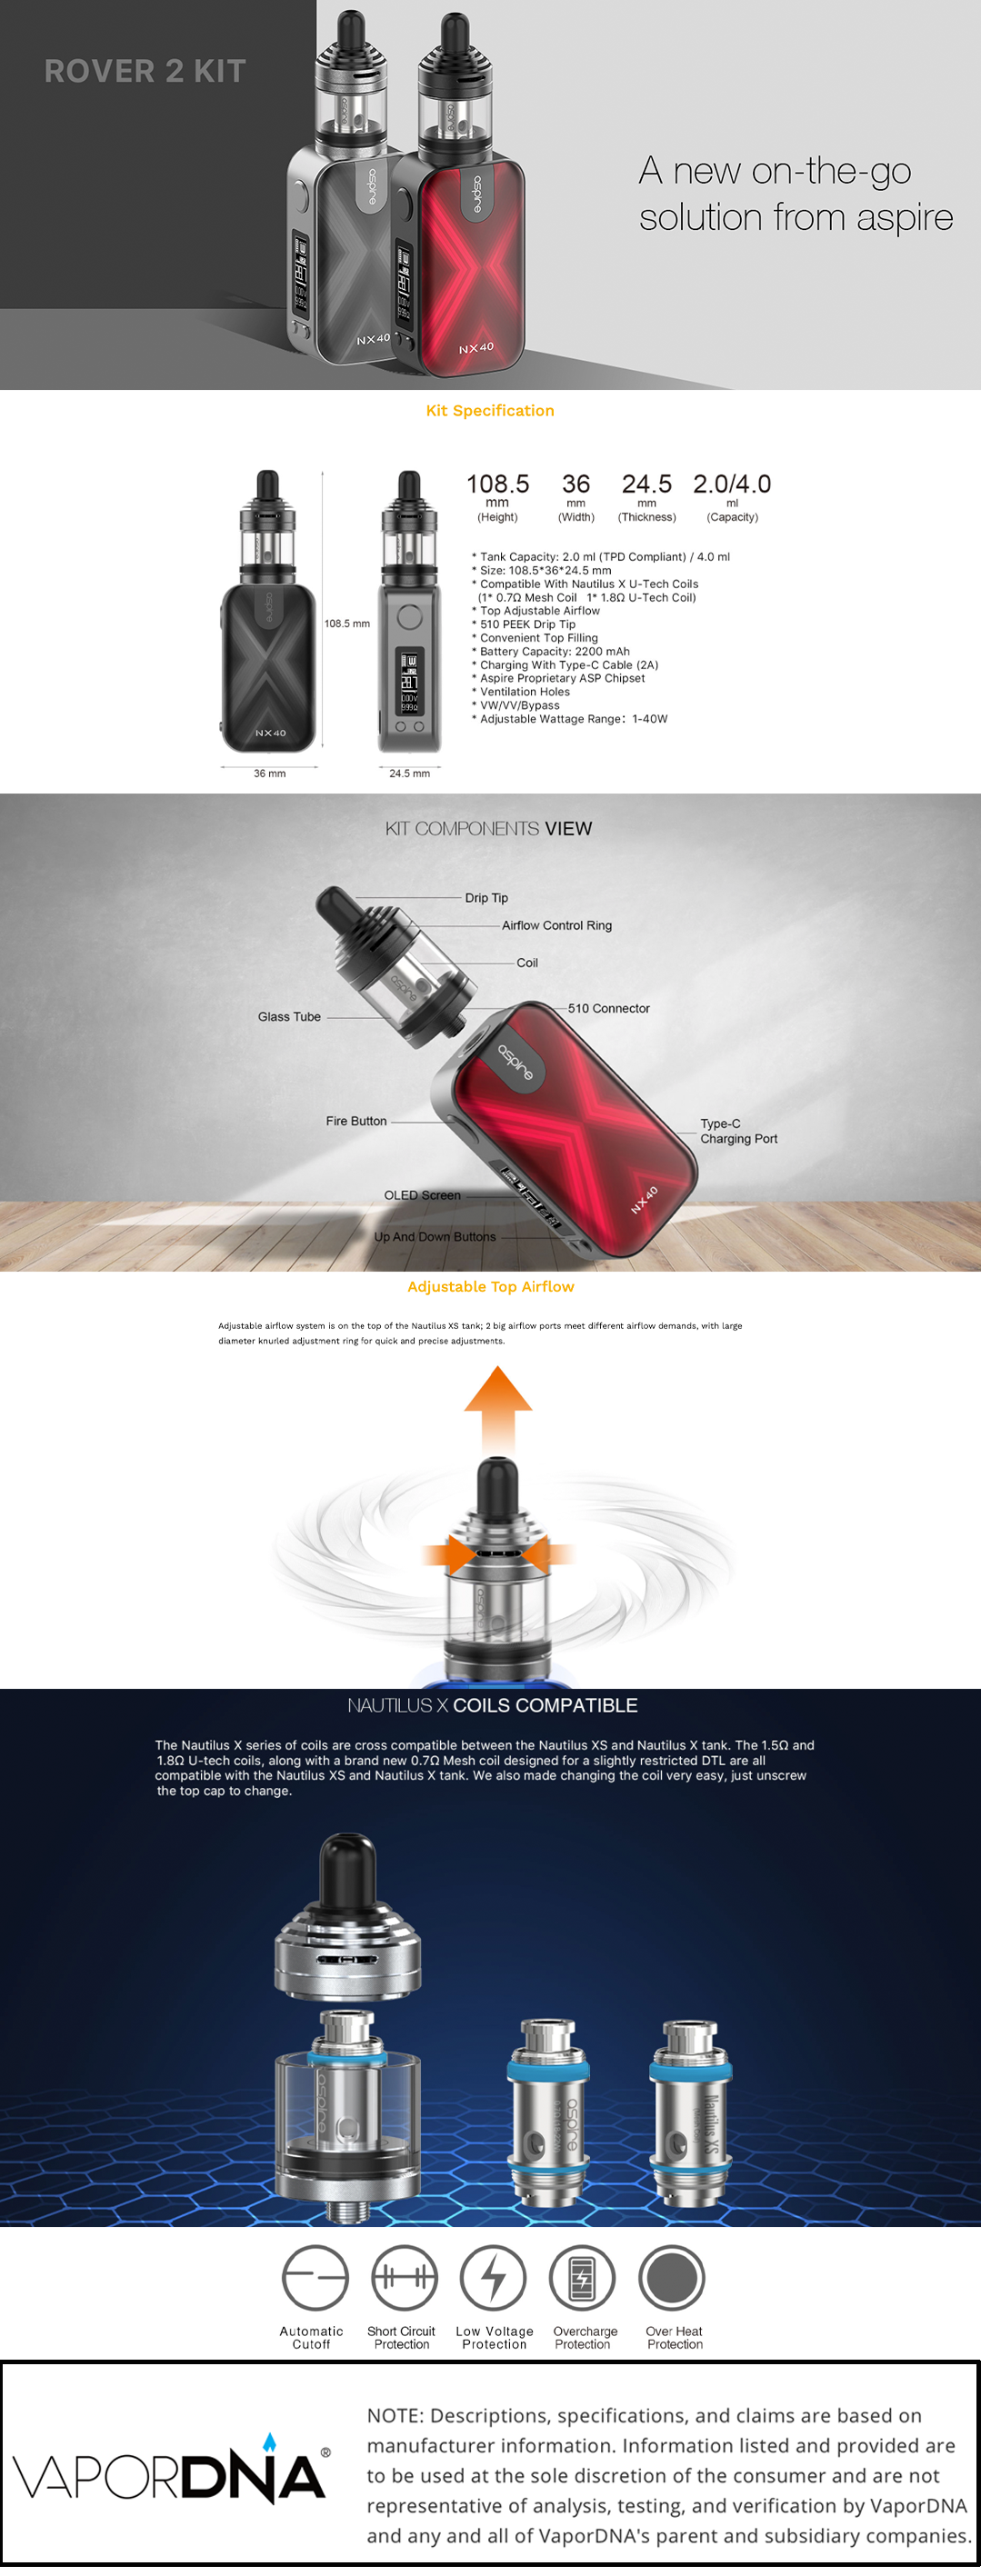 Aspire-Rover2-infographic